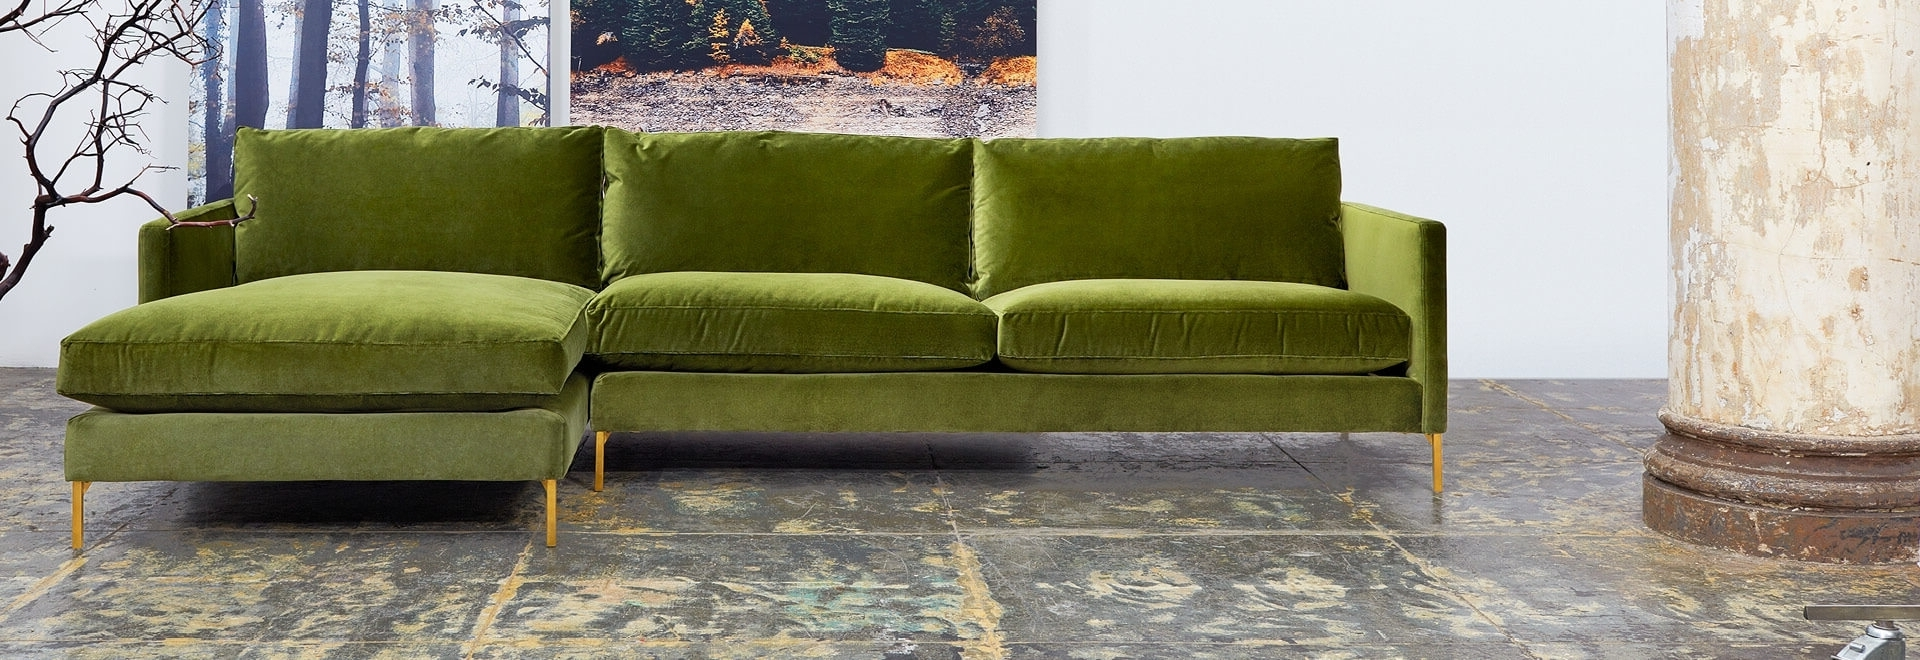 Queens Ny Sectional Sofas regarding Most Up-to-Date Cobble Hill Furniture At Abc Home